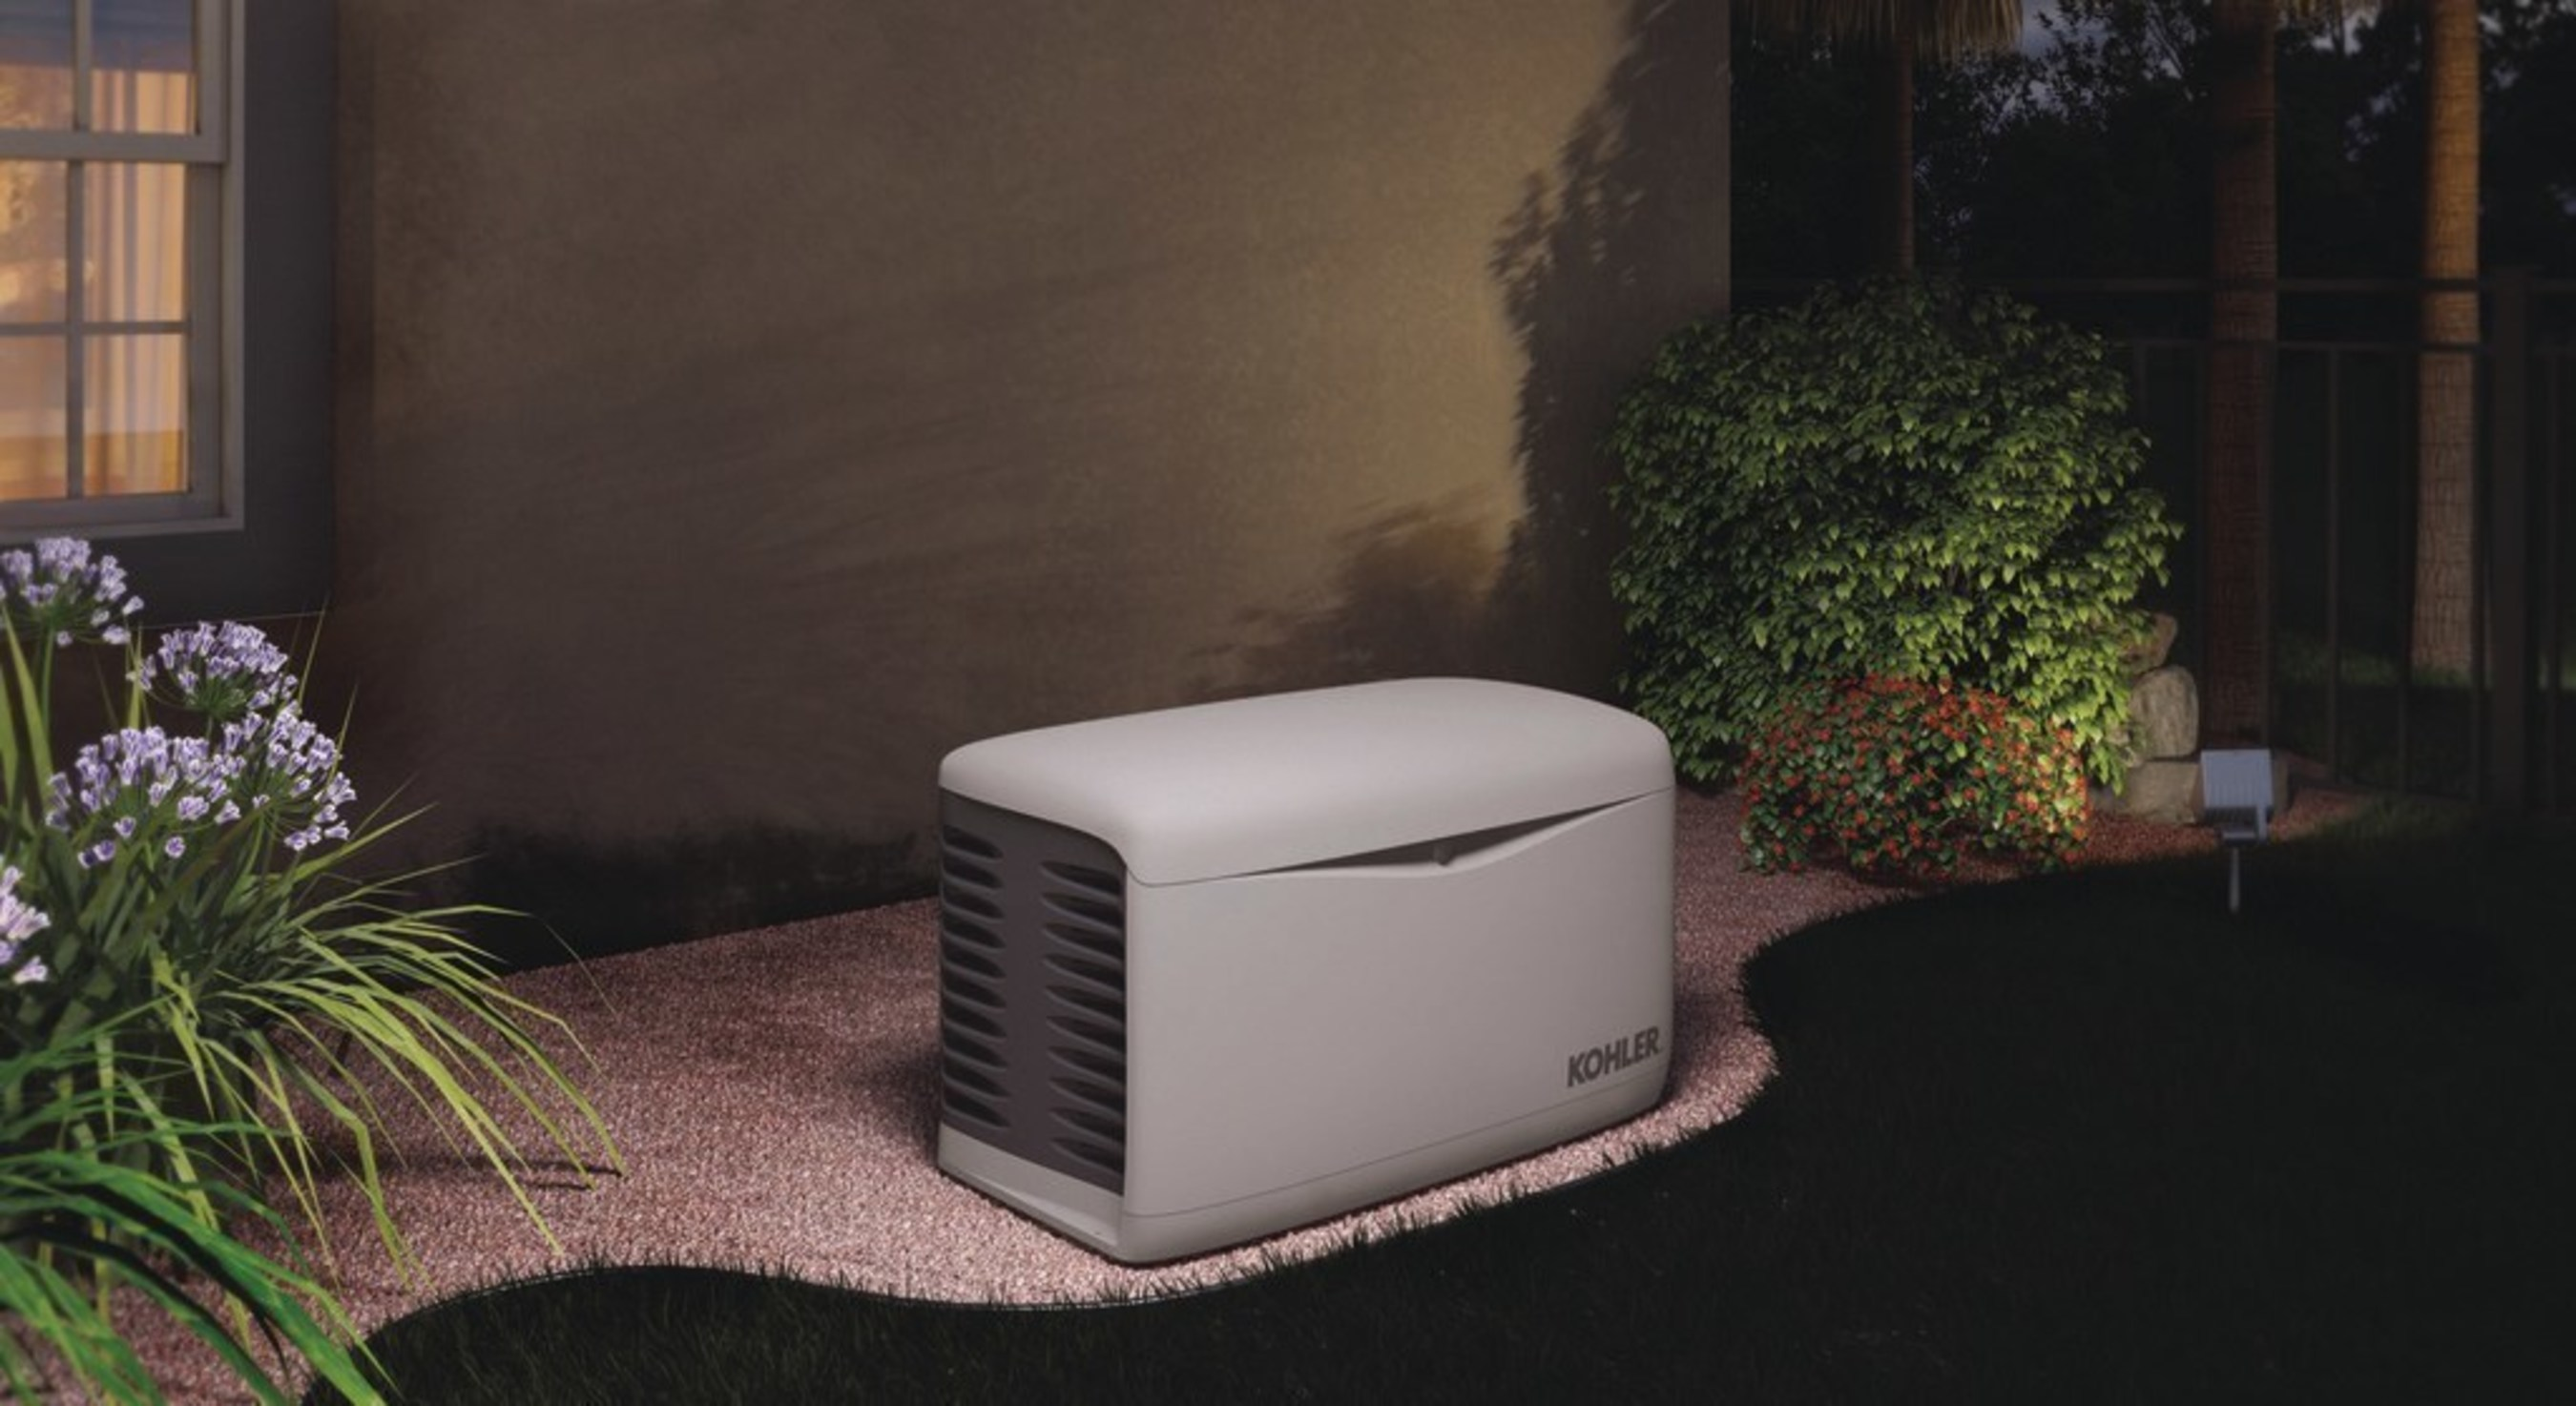 Kohler Generators offers tips for keeping your home and